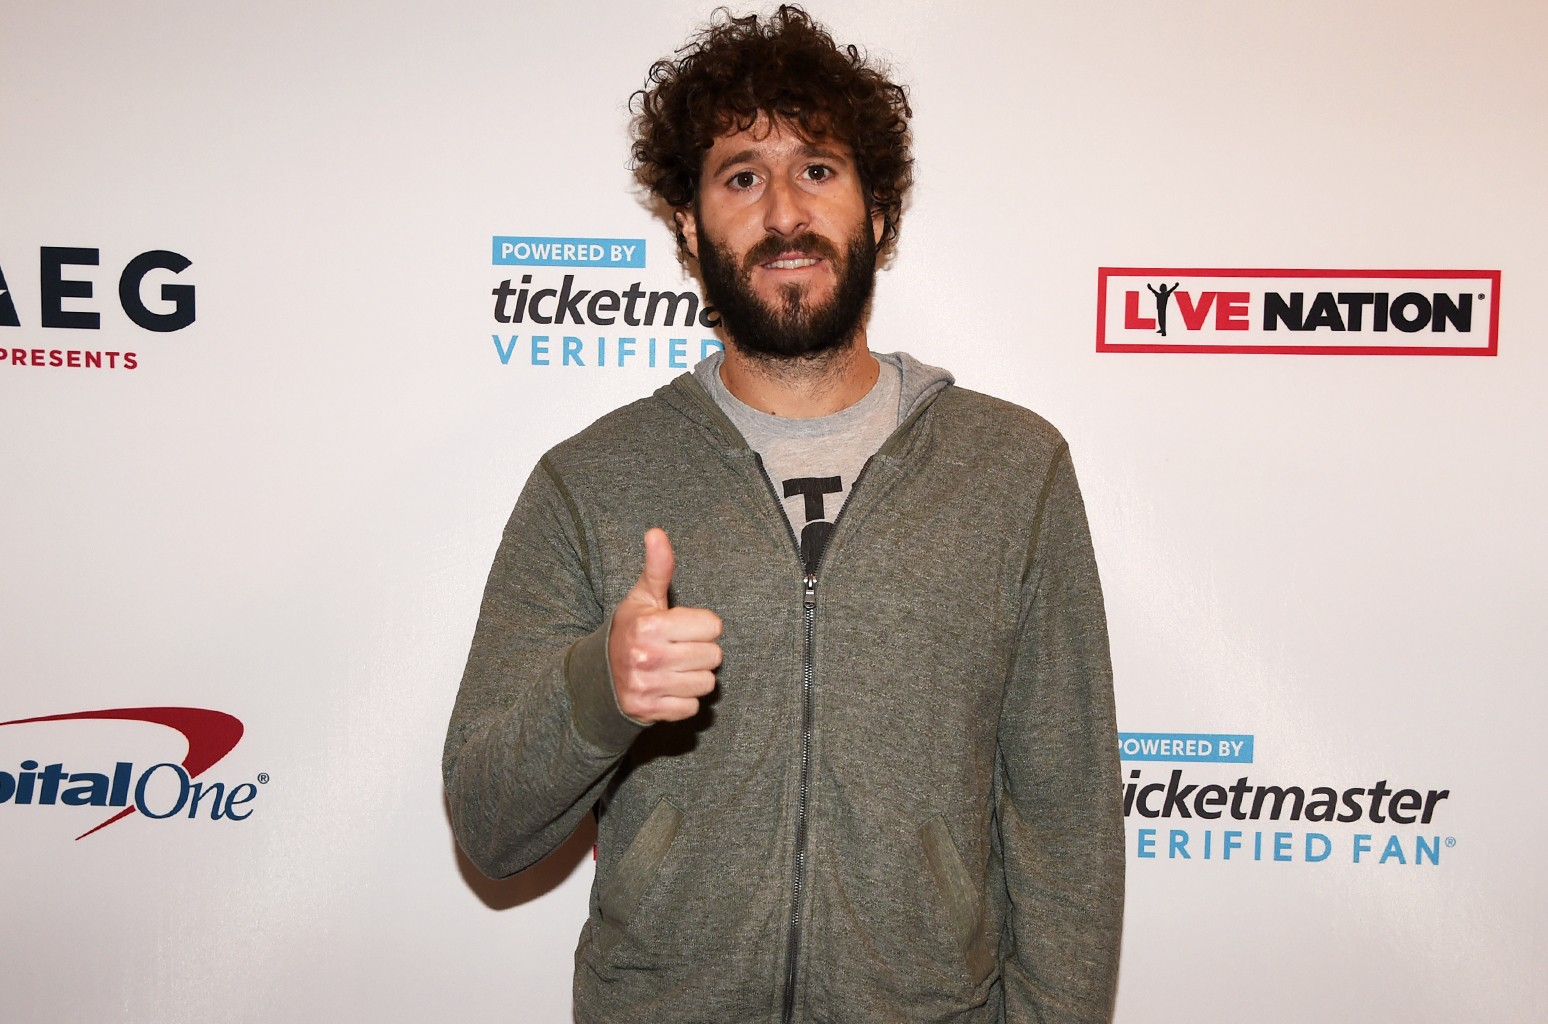 Lil Dicky S Freaky Friday Featuring Chris Brown Aiming For Top 20 Billboard Hot 100 Debut Billboard Billboard